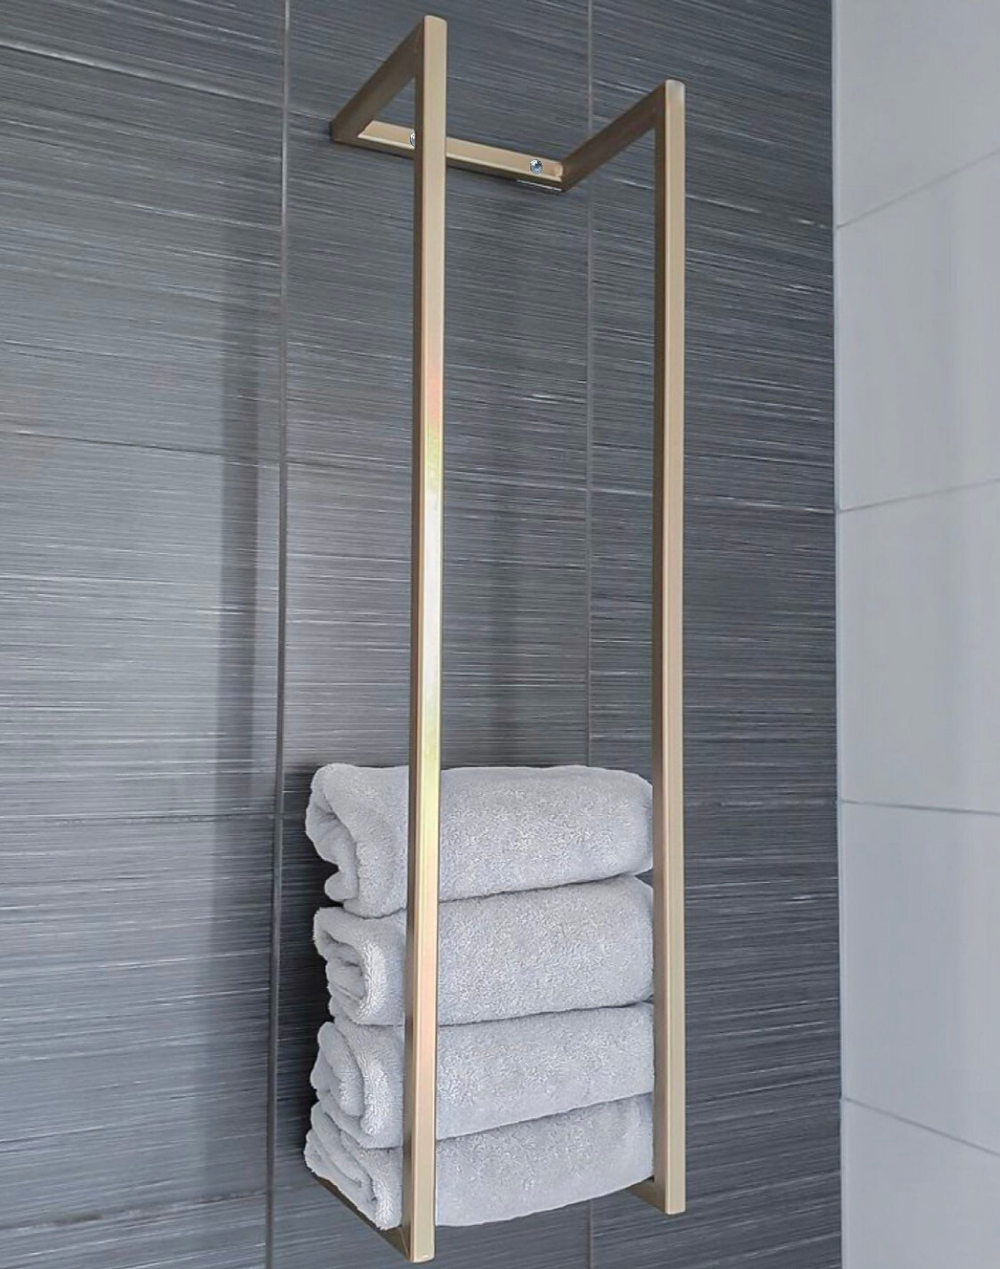 Steel Towel Rack Metal Towel Holder Towel Storage Towel Rack Bathroom Towel Holder インテリア 家具 洗面所